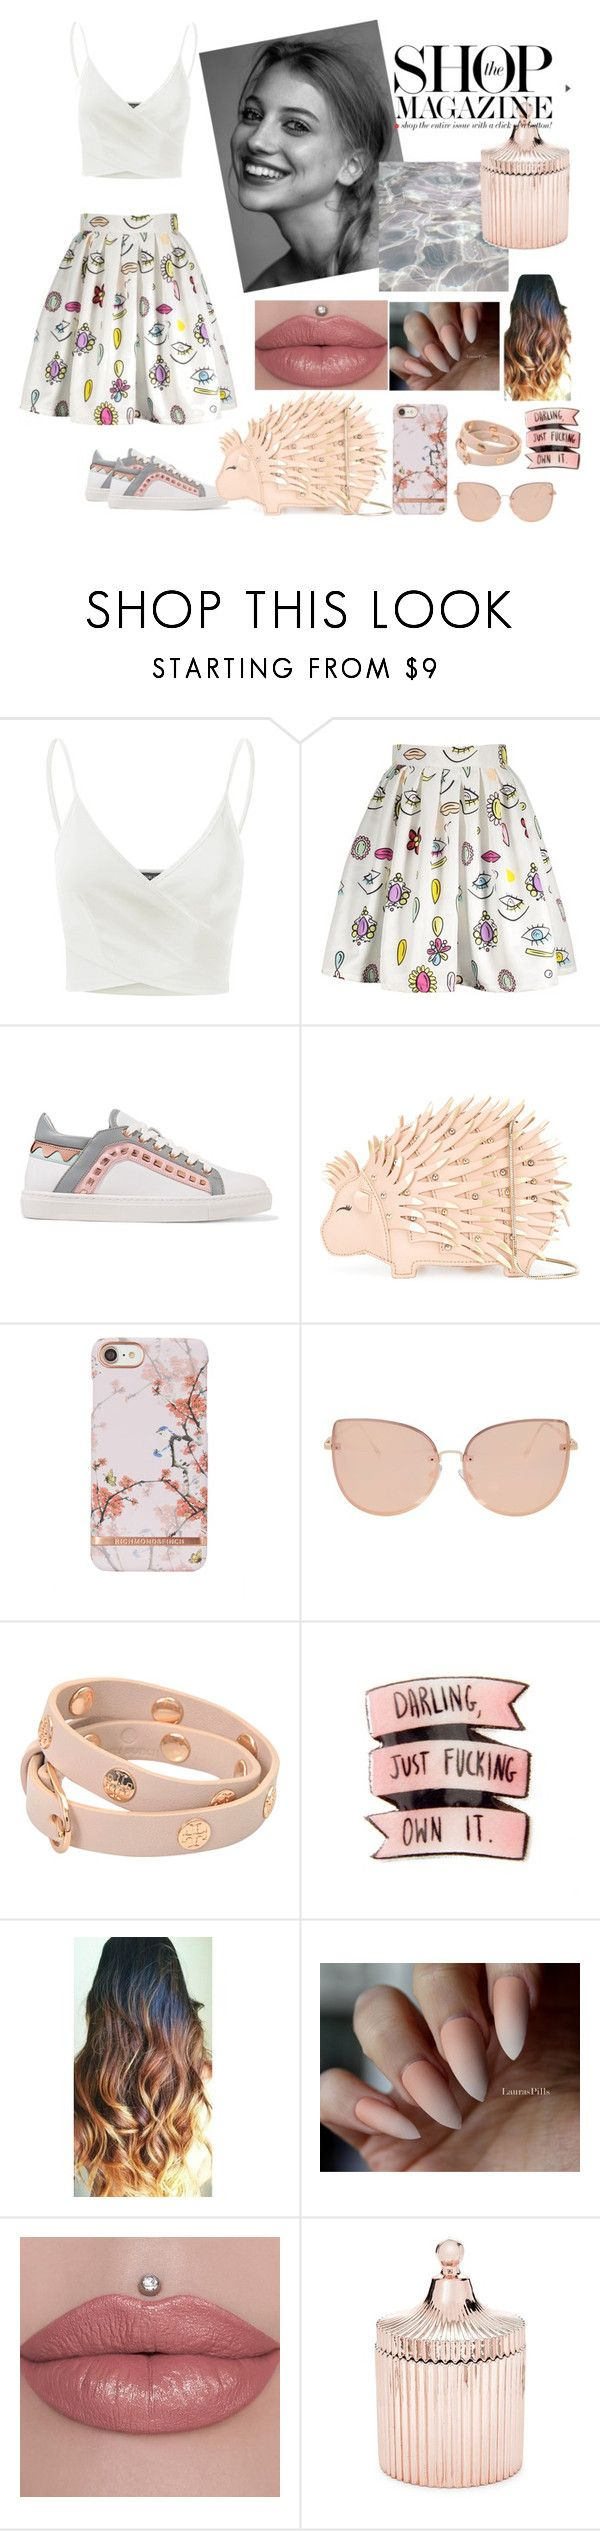 """SWEET AS SUGAR 🌹🌸"" by dumitru-ariadna ❤ liked on Polyvore featuring Doublju, Sophia Webster, Kate Spade, Topshop, Tory Burch and Saks Fifth Avenue"